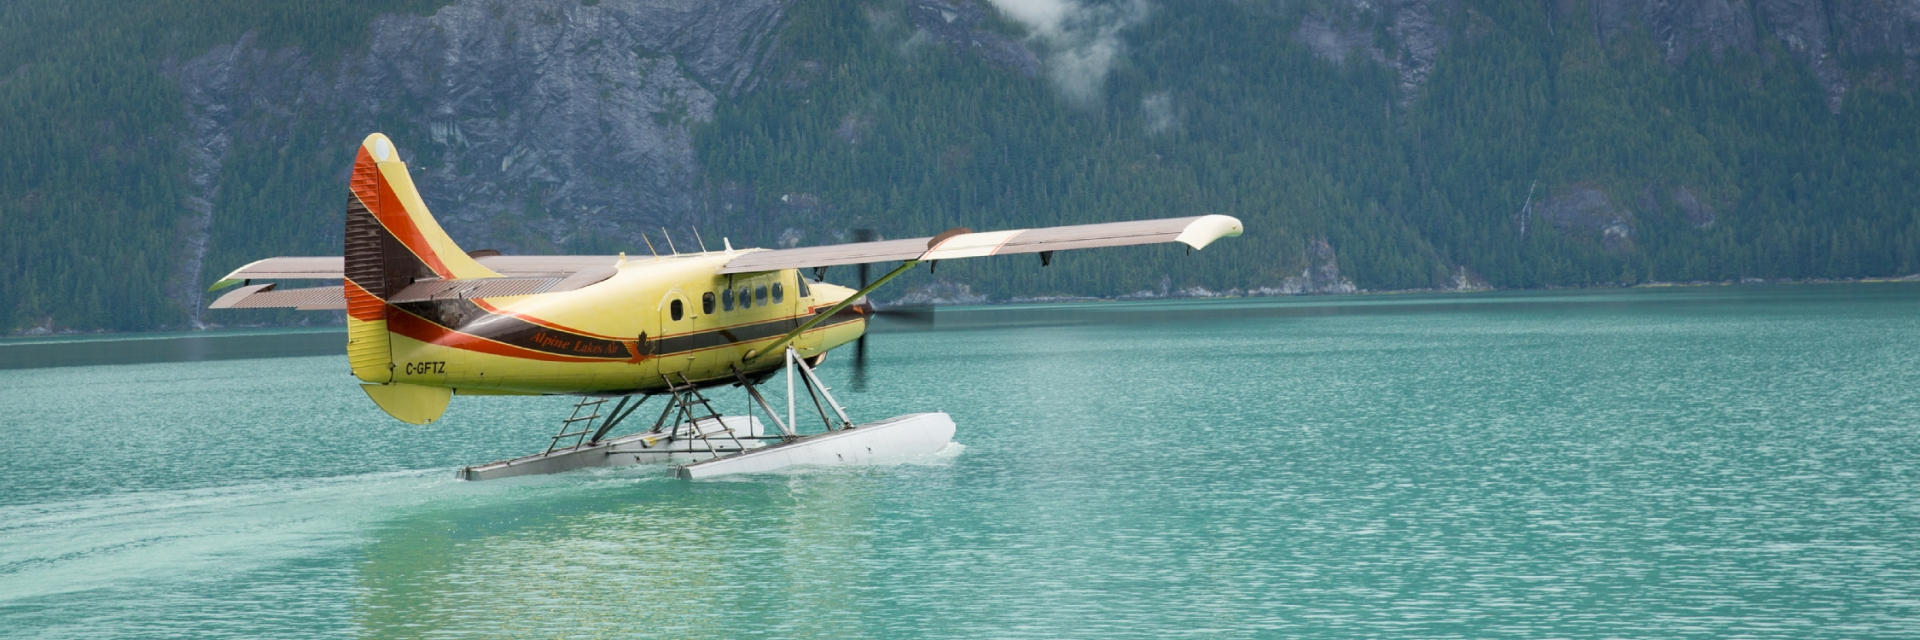 A float plane landed on the water near a mountain range